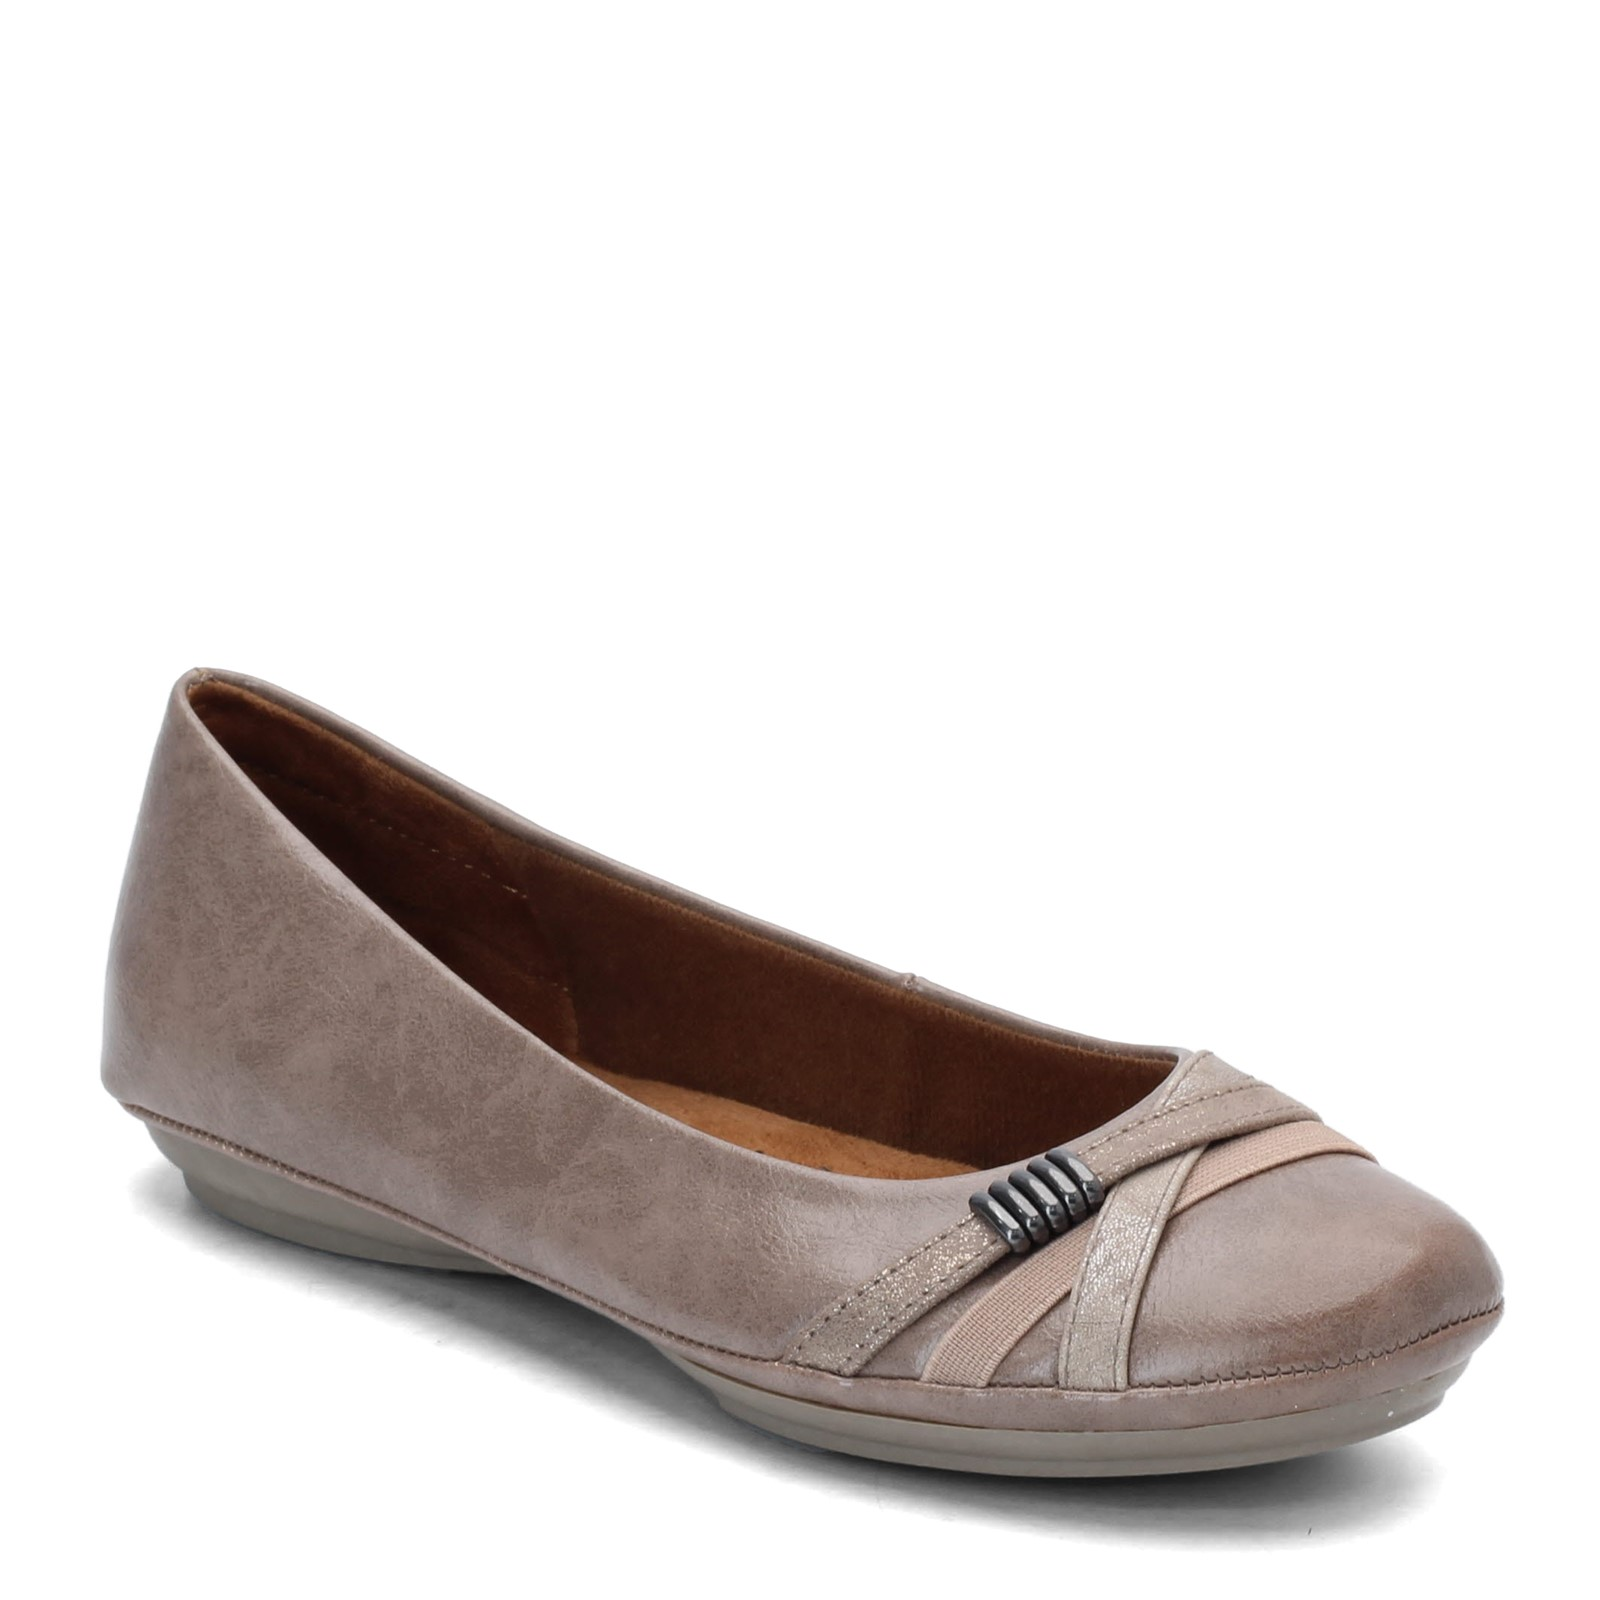 Women's Euro Soft by Sofft, Shaina Flat